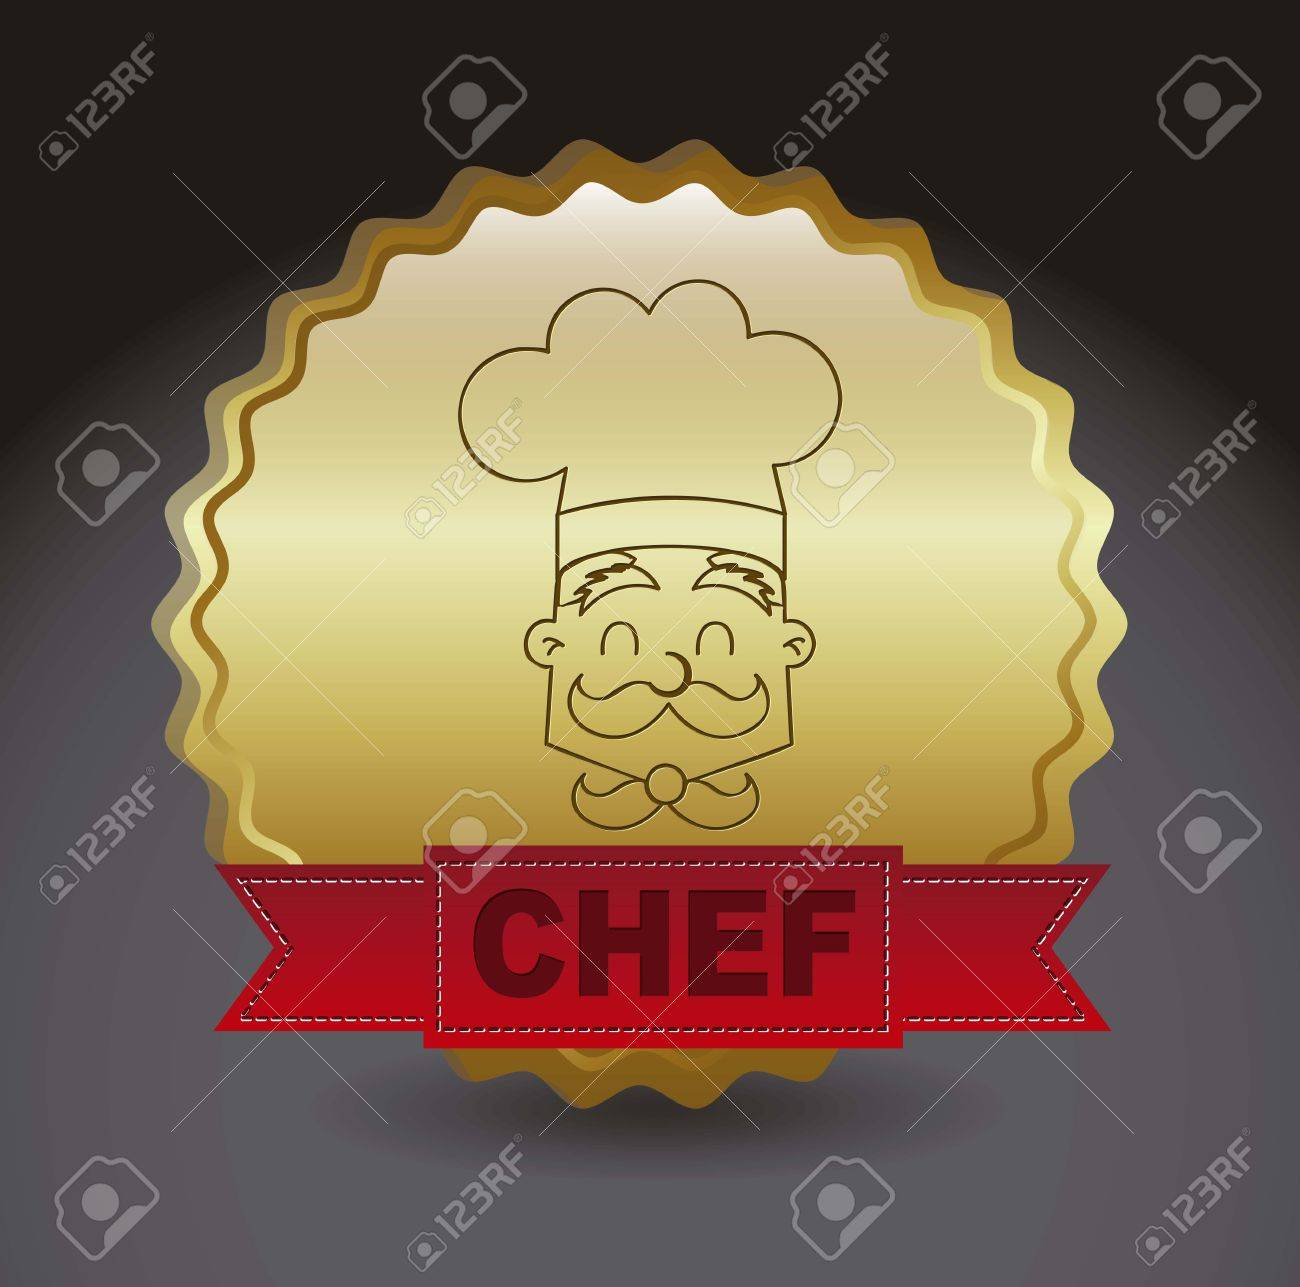 chef icon over gold ribbon over black background. vector Stock Vector - 16287937